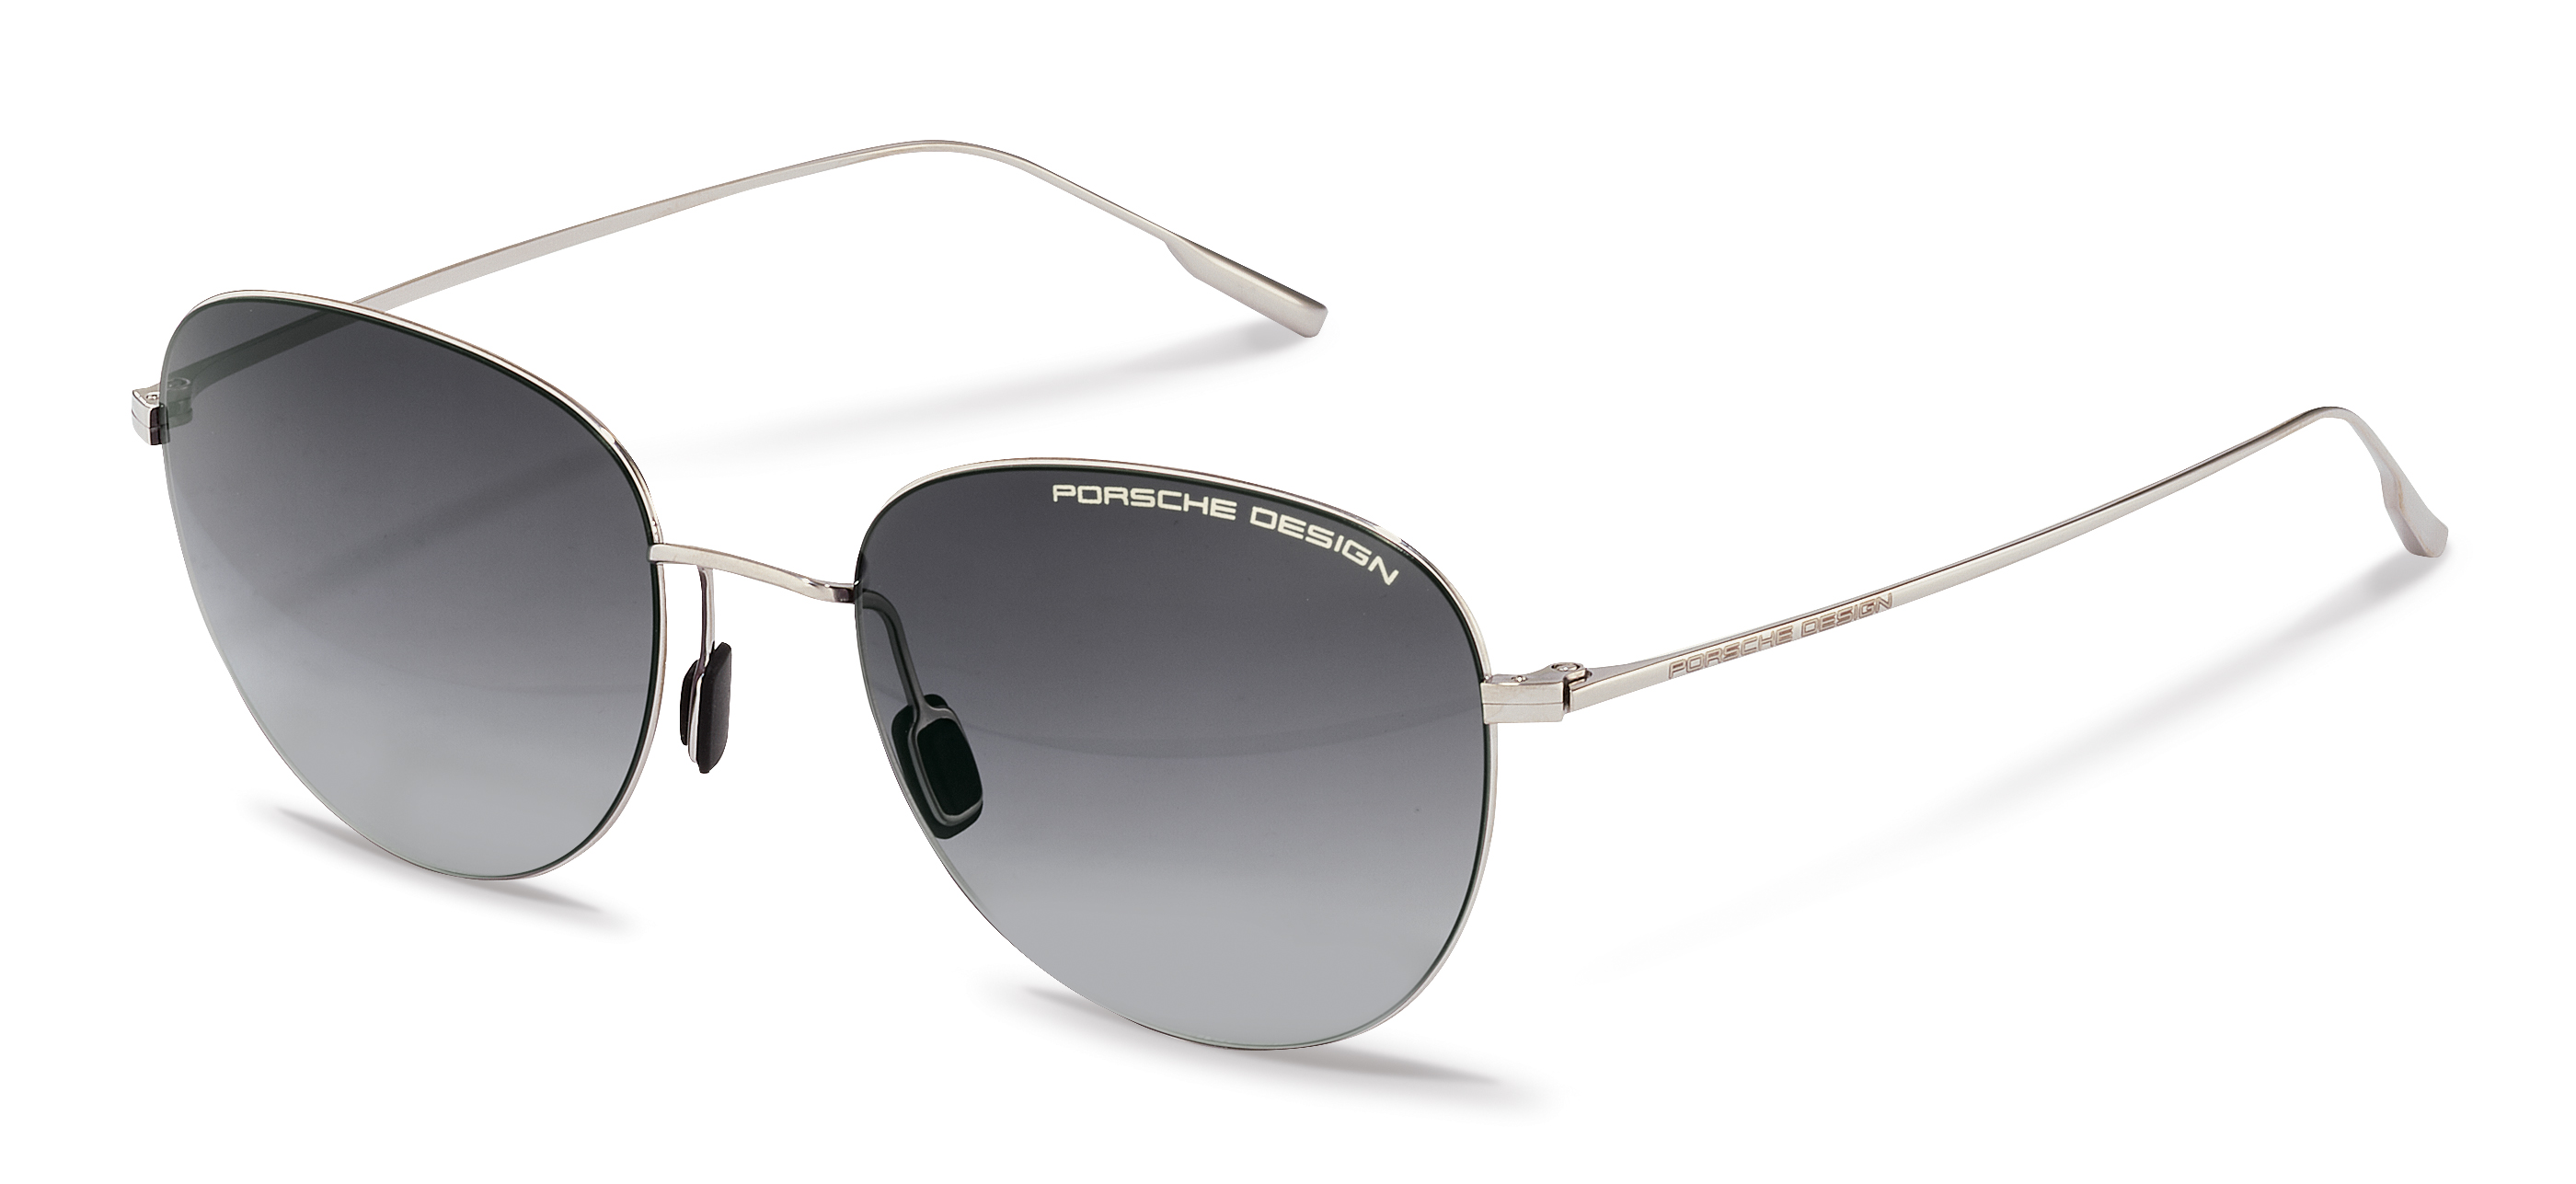 Porsche Design-Sunglasses-P8916-black